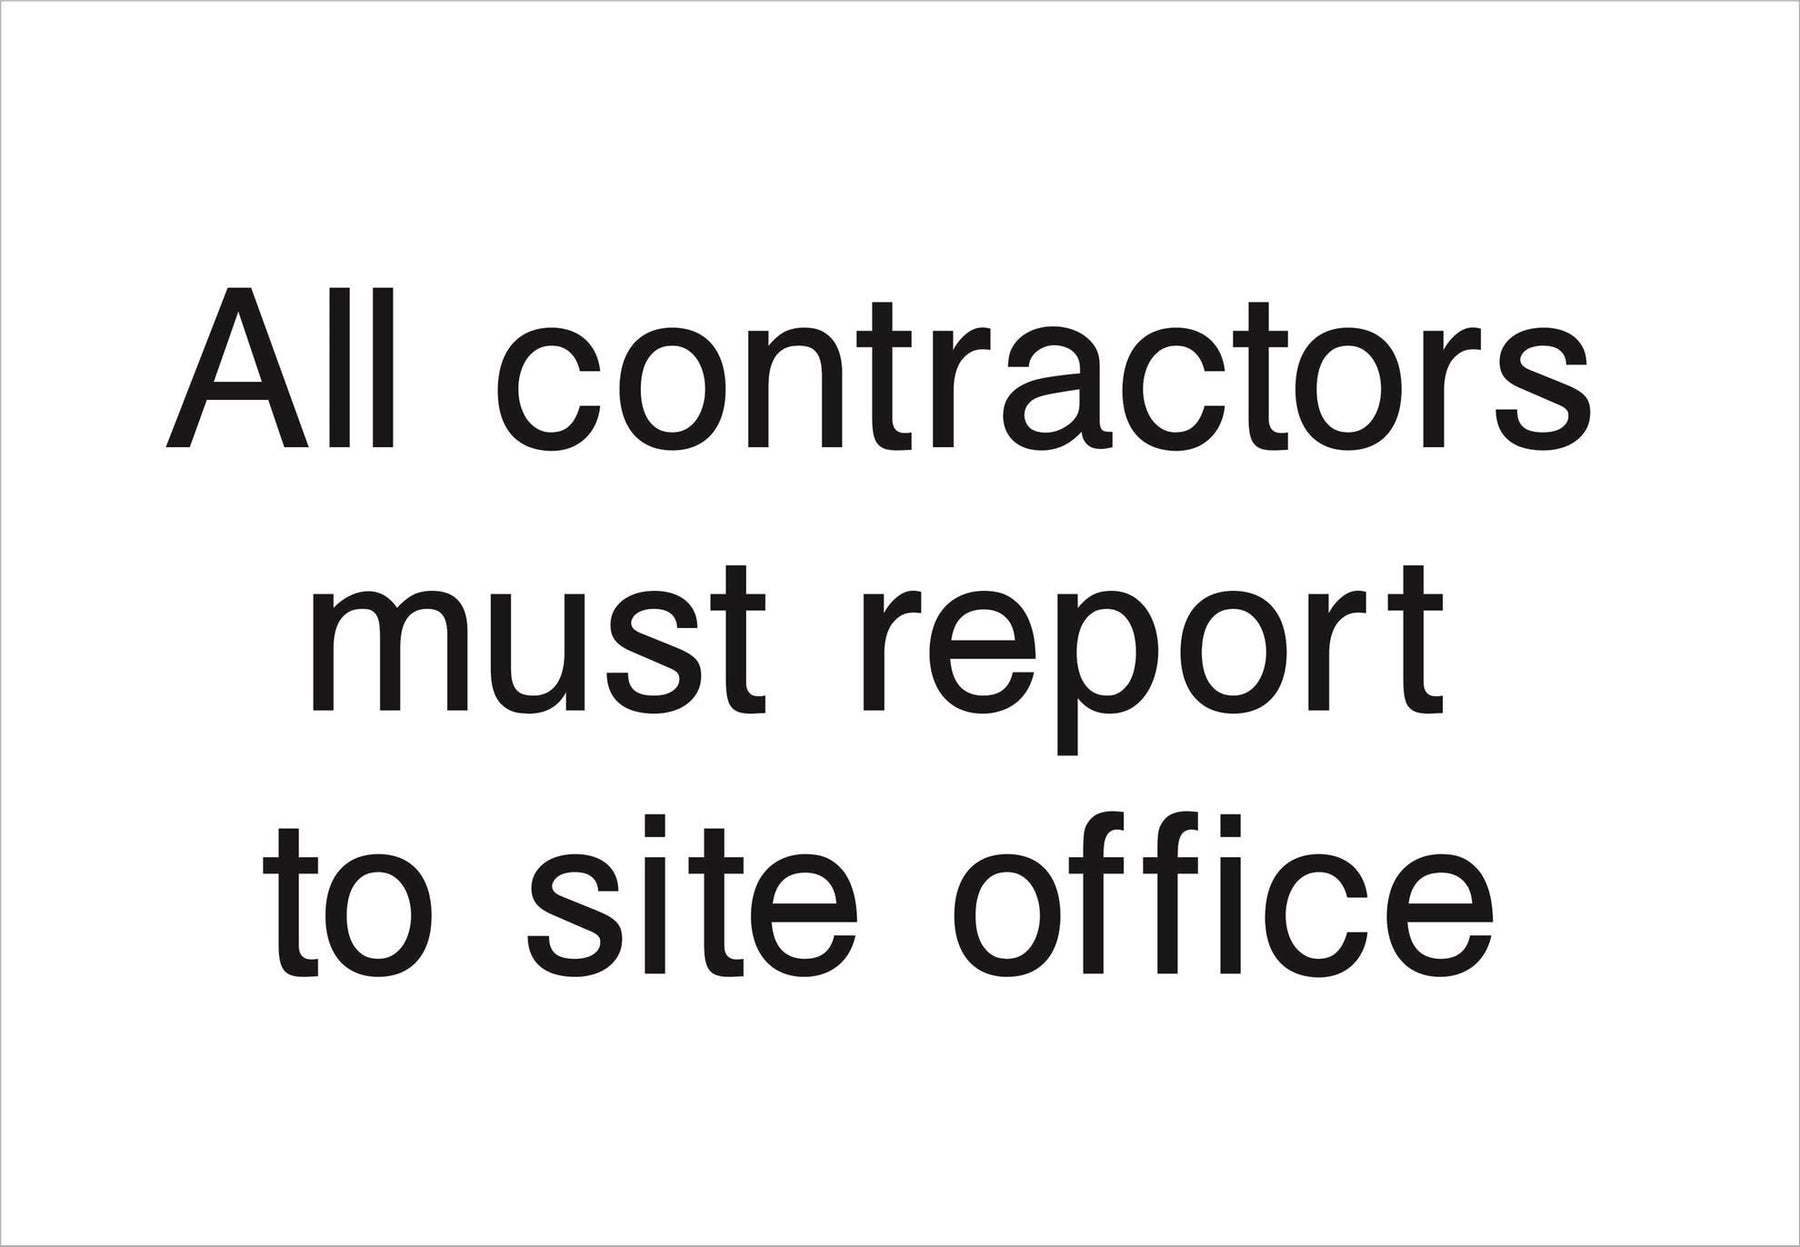 All contractors must report